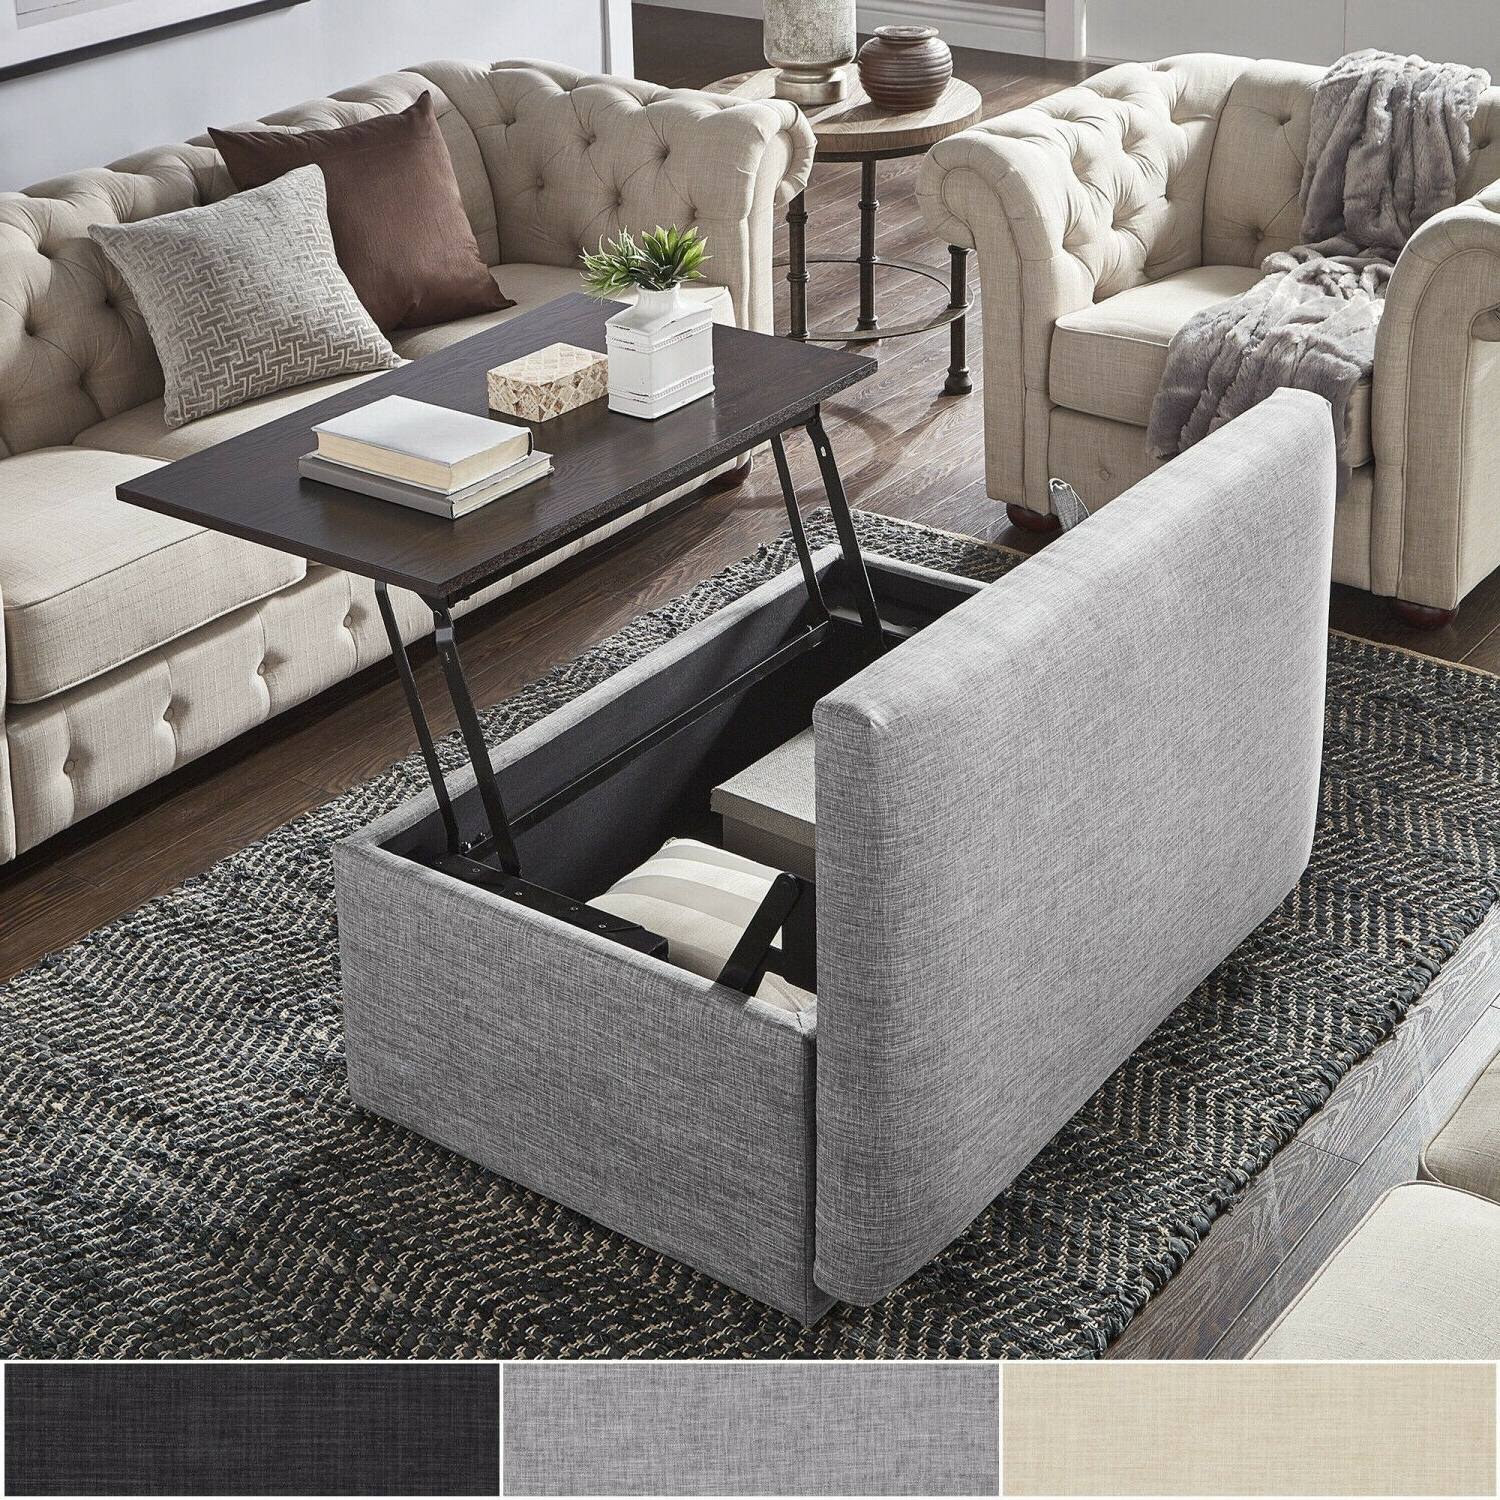 Most Popular Lennon Pine Planked Storage Ottoman Coffee Tables With Landen Lift Top Upholstered Storage Ottoman Coffee Tableinspire Q Artisan (View 7 of 20)